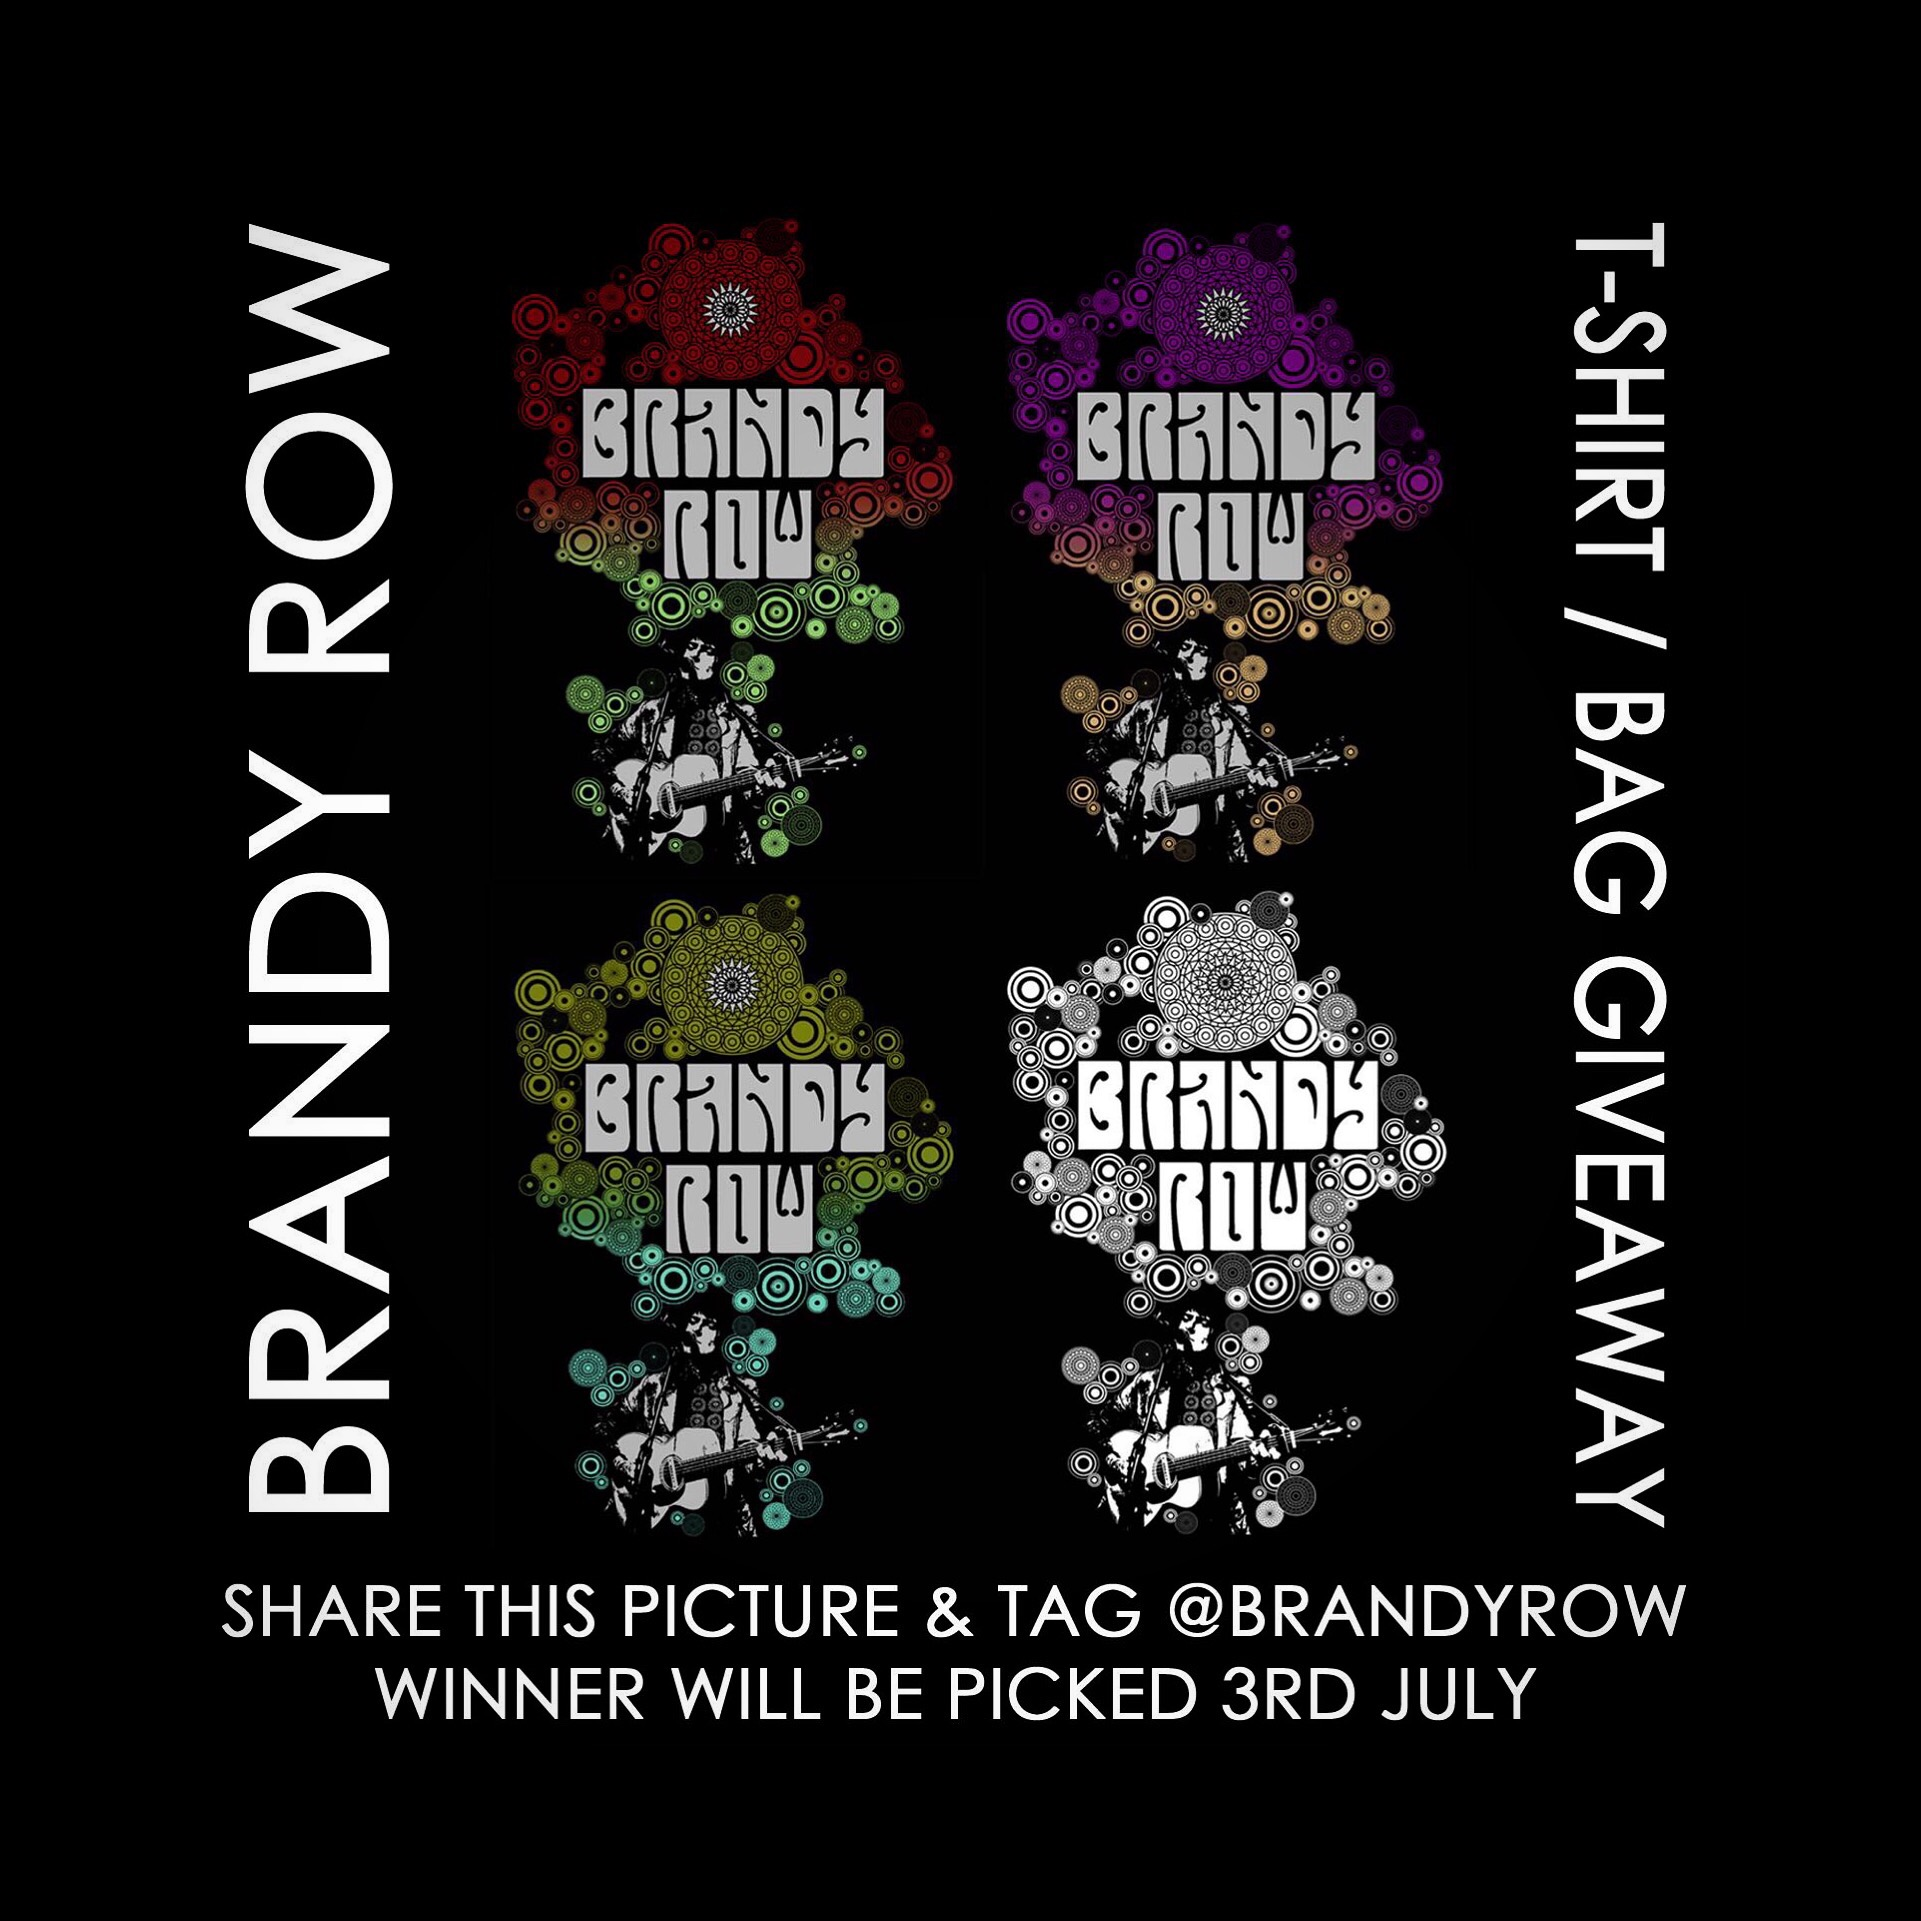 News flash! I'll be releasing my brand new t-shirts and bags next Monday the 3rd! To celebrate there will be a free t-shirt (in any colour of your choice) and bag giveaway to the lucky winner where you shall be in the world! So all you gotta do is share this pic on instagram and tag @brandyrow #art #performer #brandy